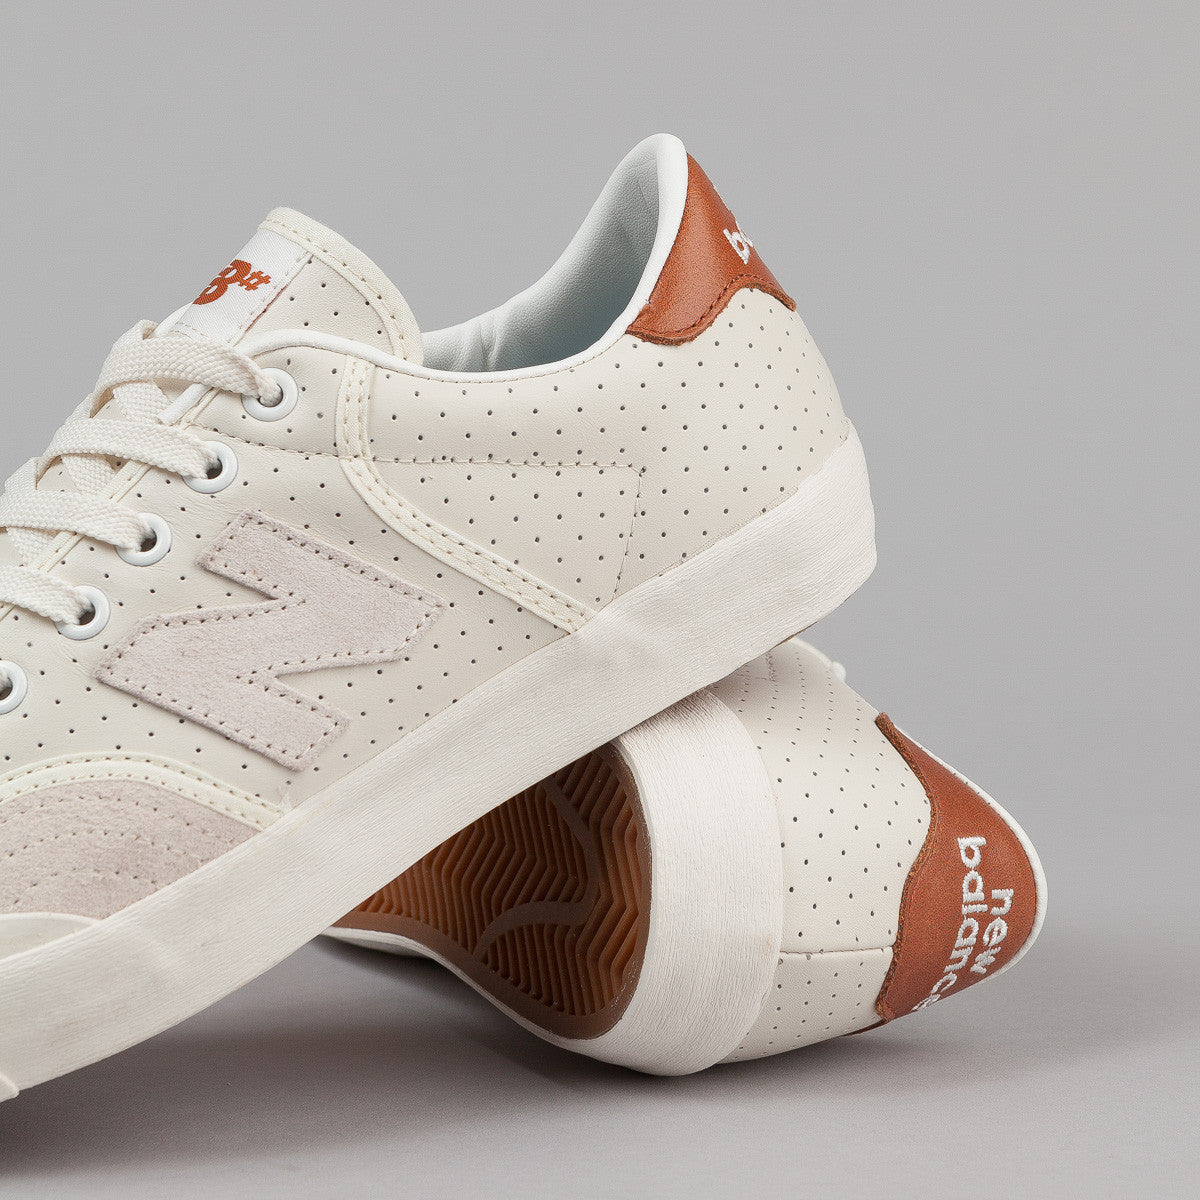 New Balance Numeric Pro Court 212 Shoes - Cream